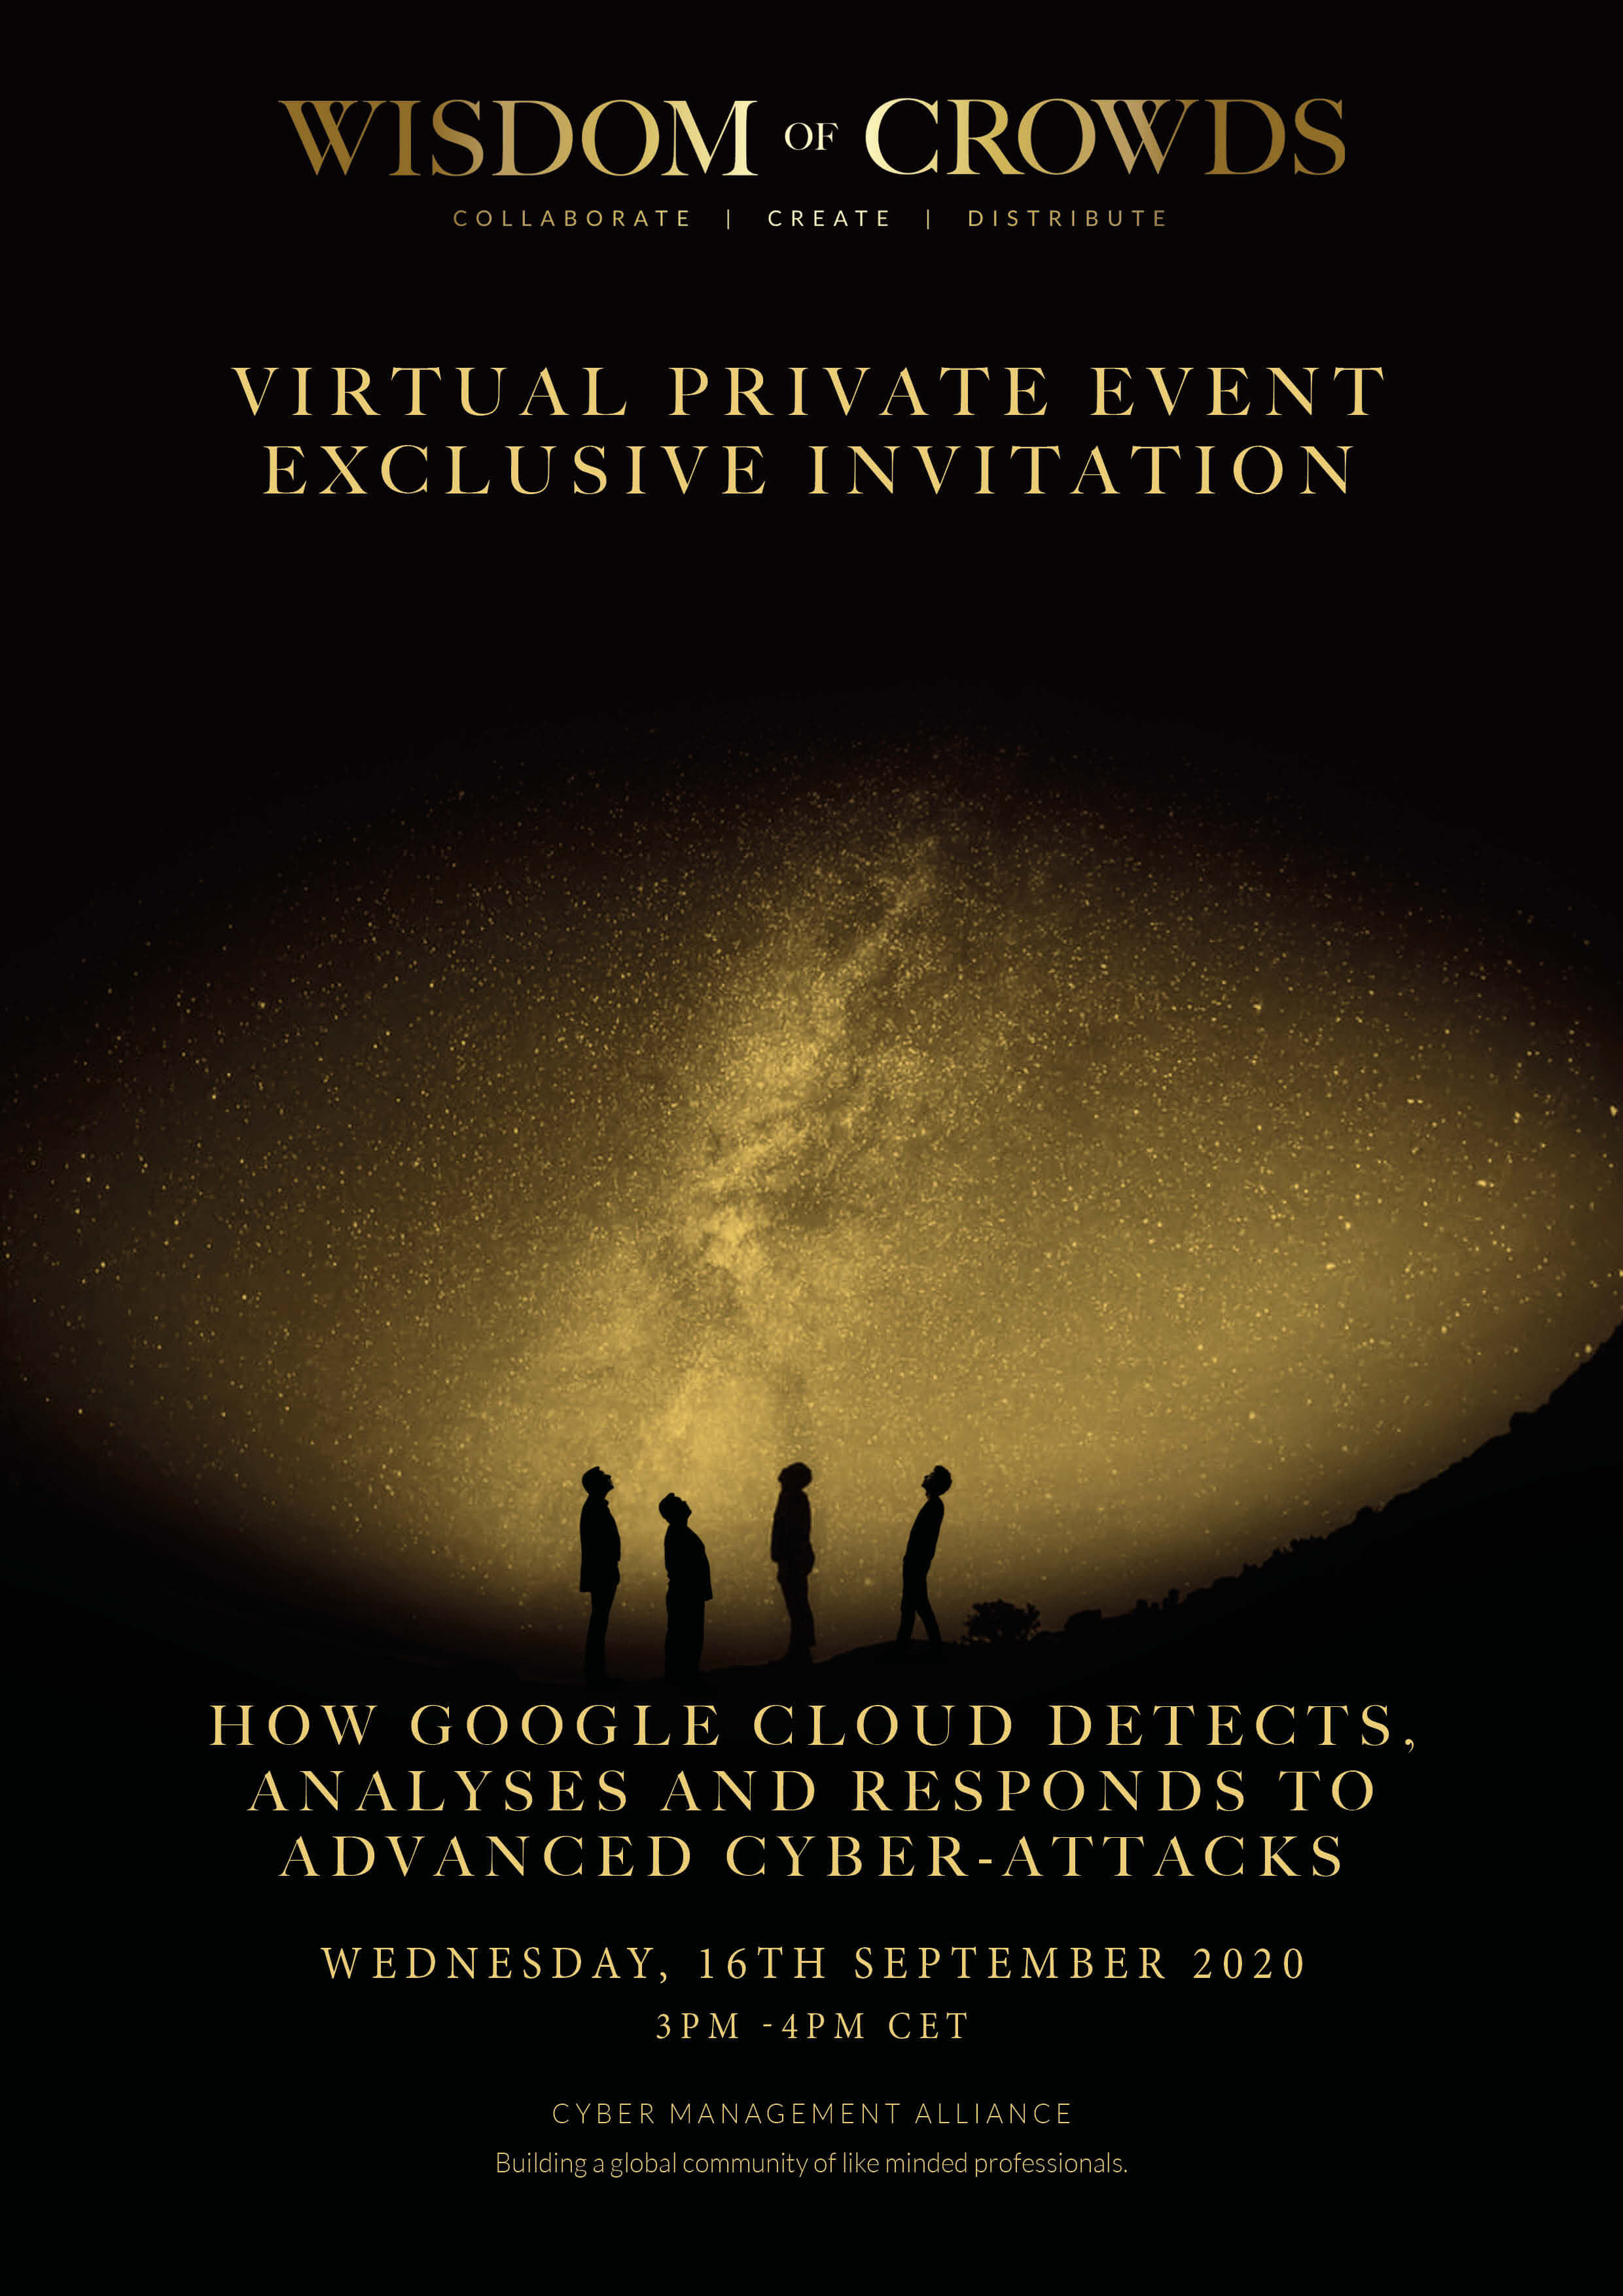 Google Wisdom of Crowds Exclusive Invitation 16th September 2020 Benelux